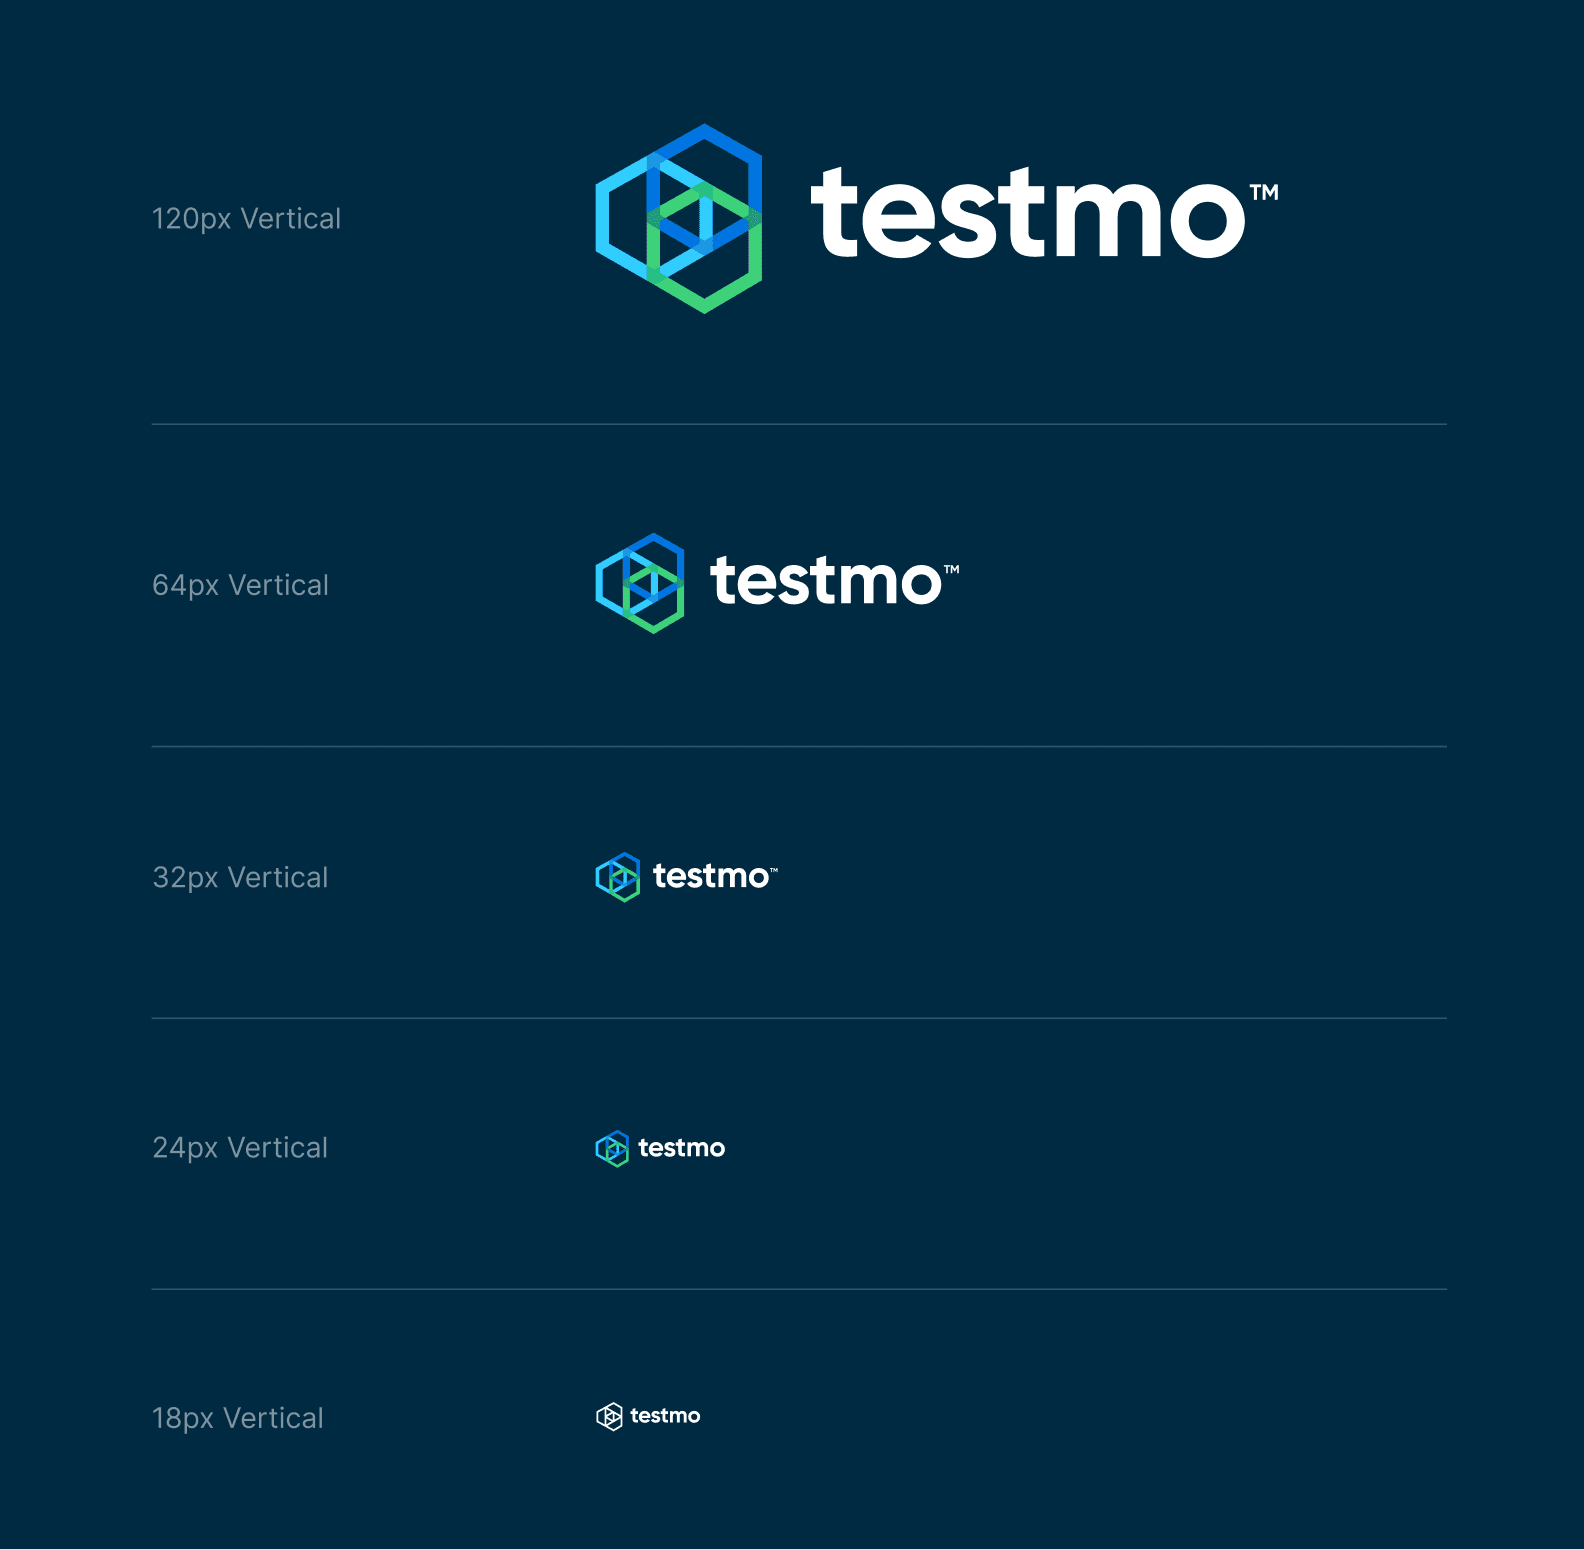 Logo variations and responsive designs from brand Testmo.